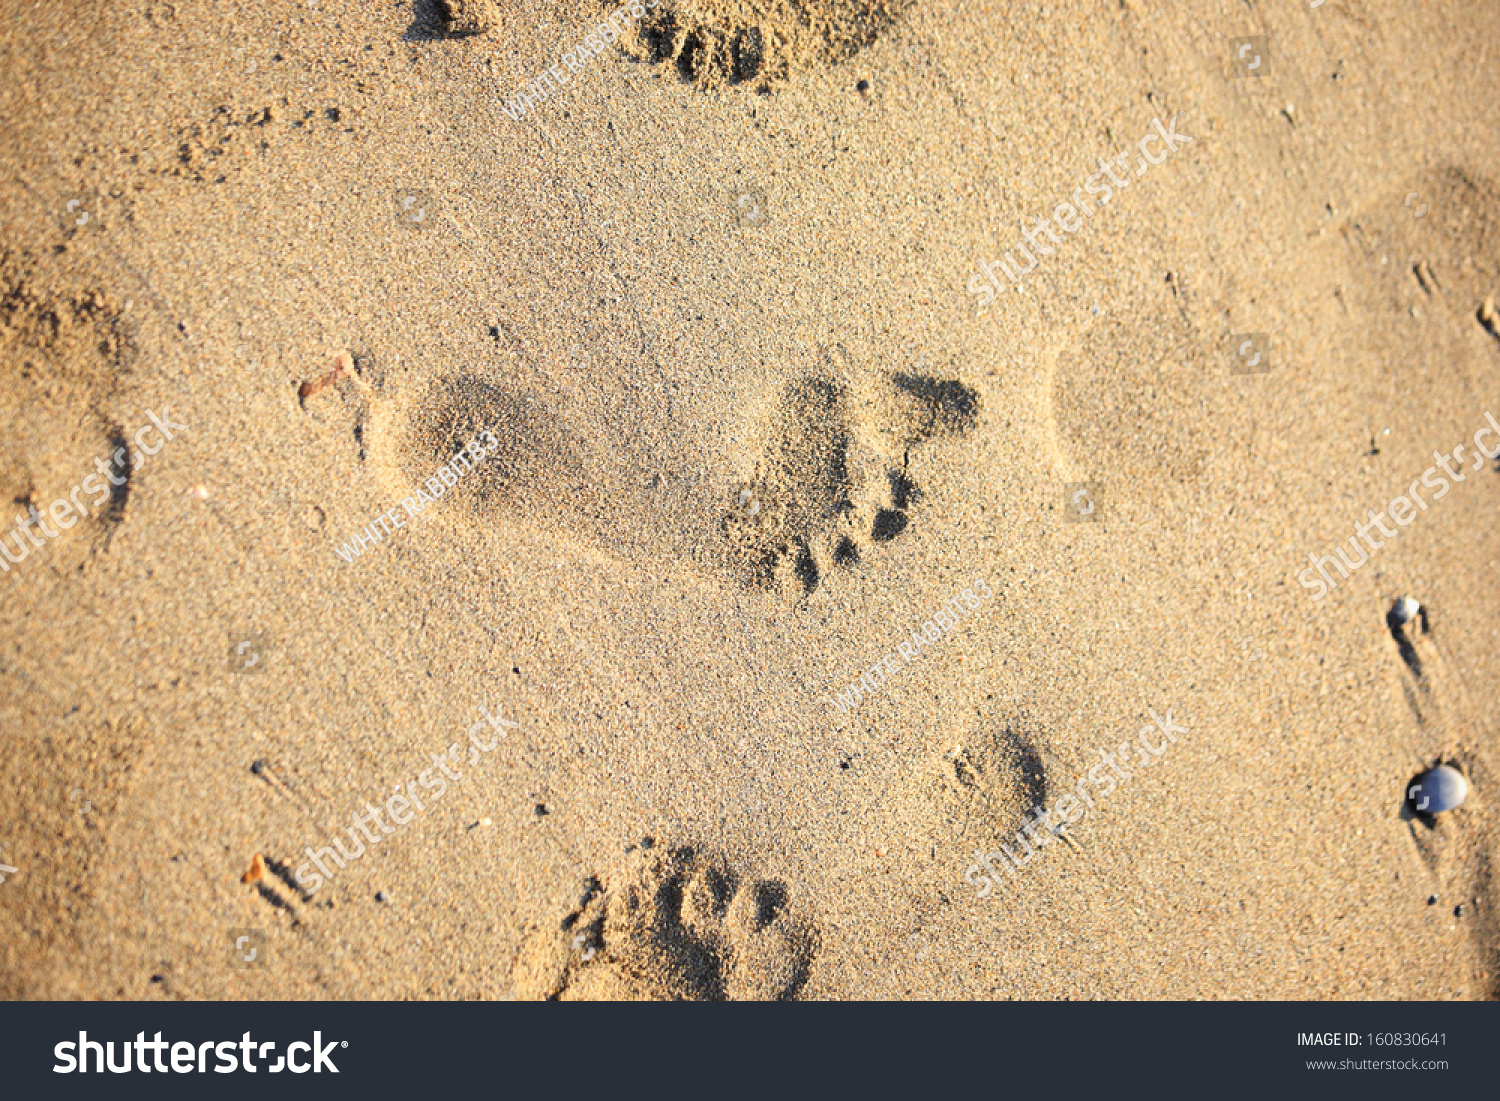 Footprints in the sand | EZ Canvas